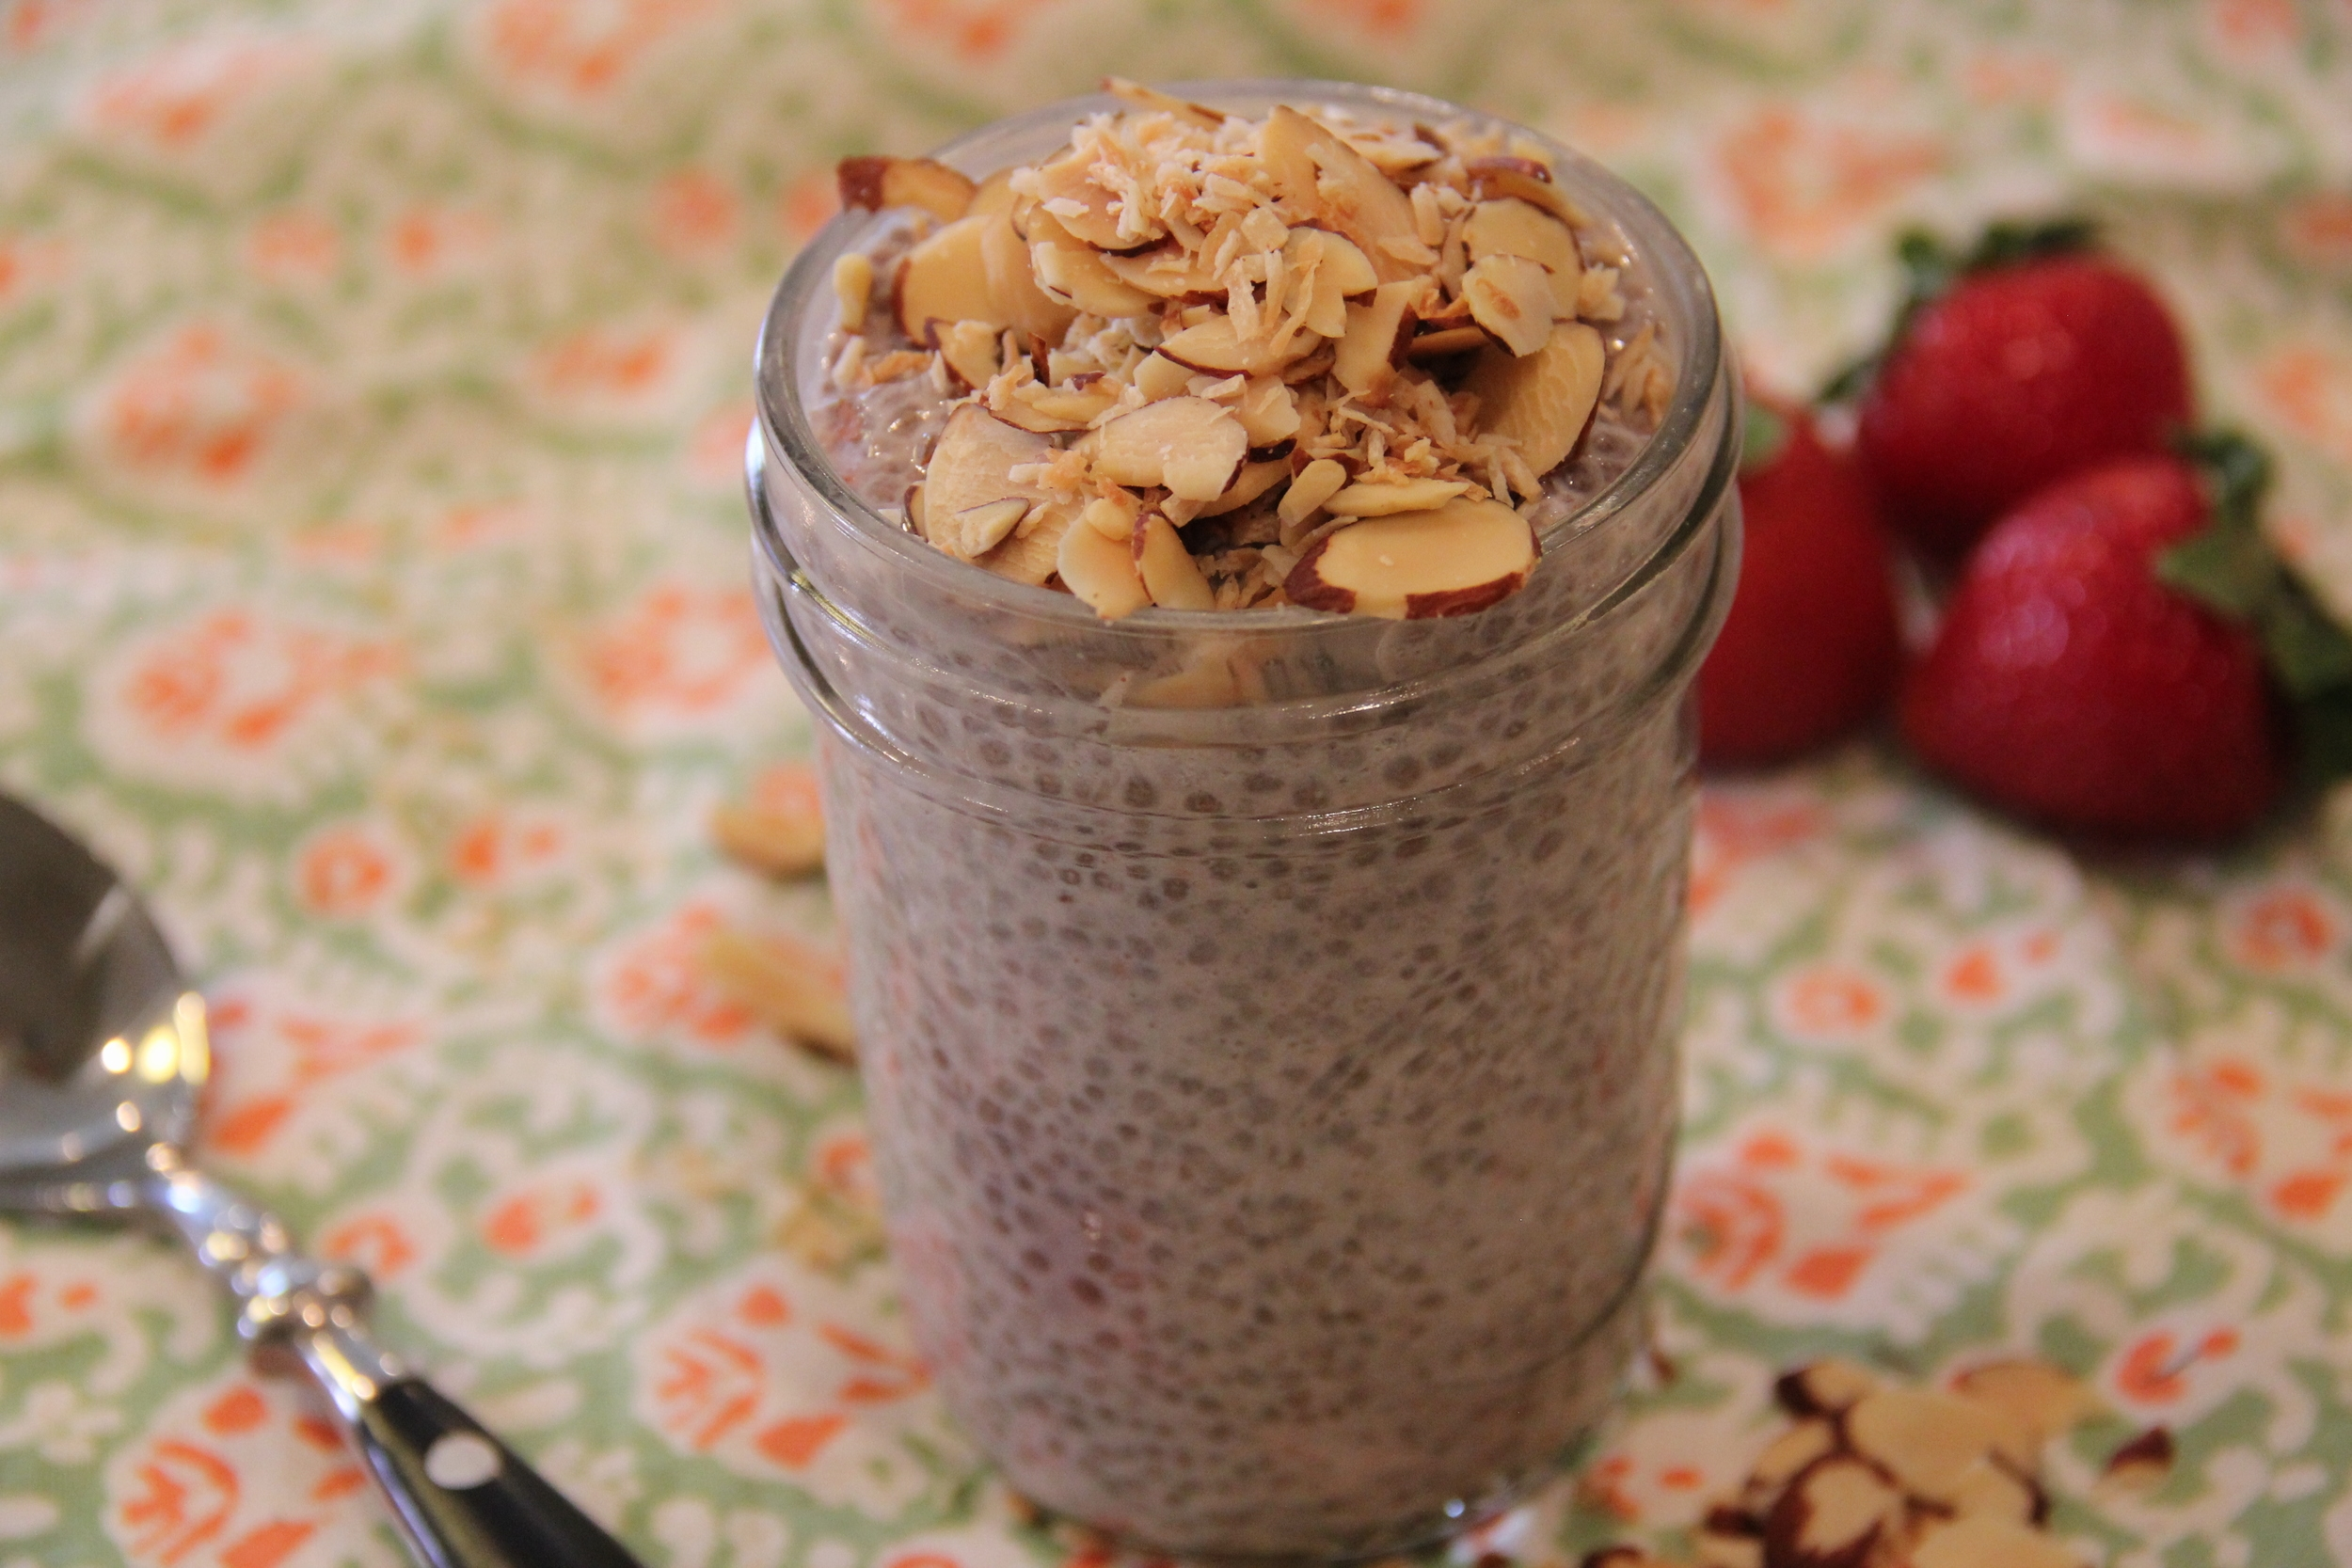 Strawberry Chia Seed Pudding with Toasted Coconut and Almonds